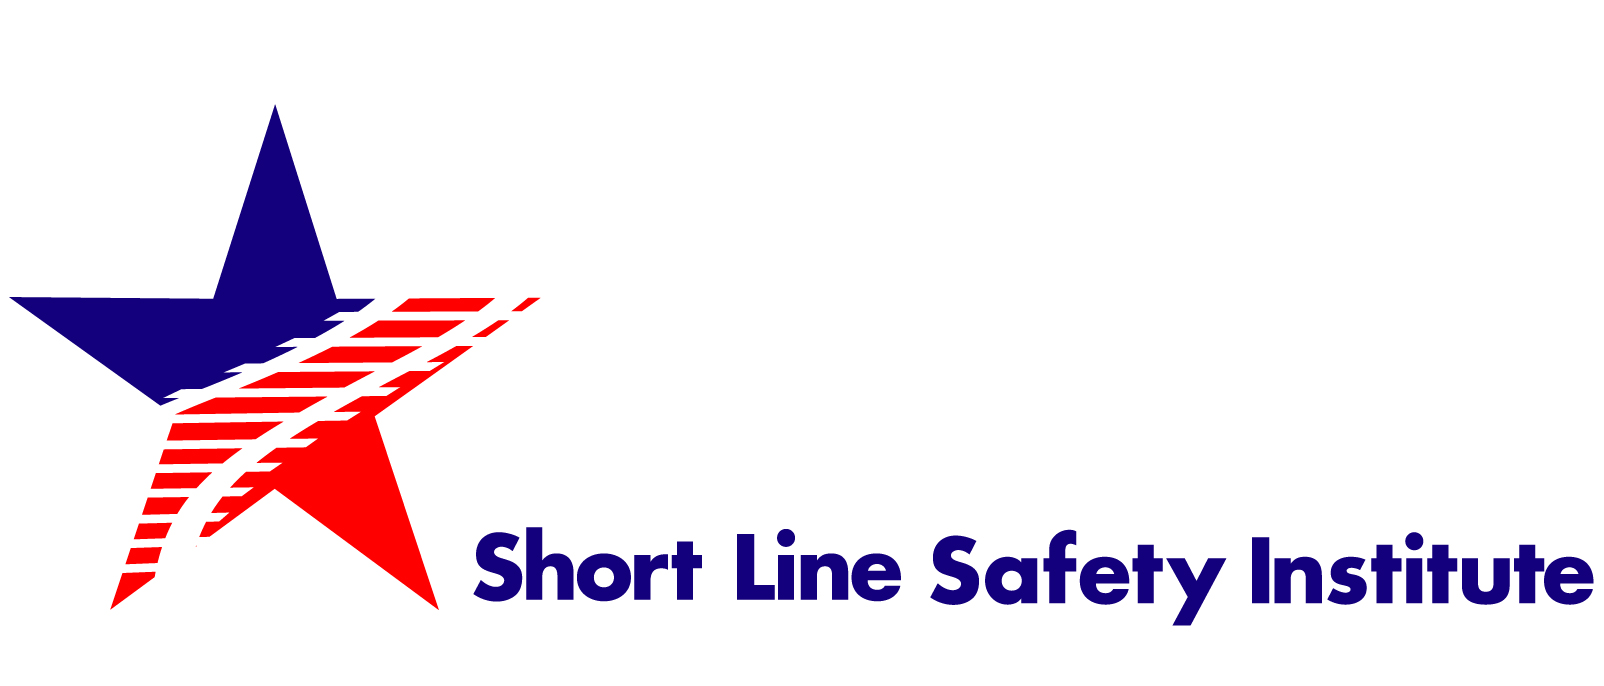 Short Line Safety Institute Appoints Director of Research and Organizational Development